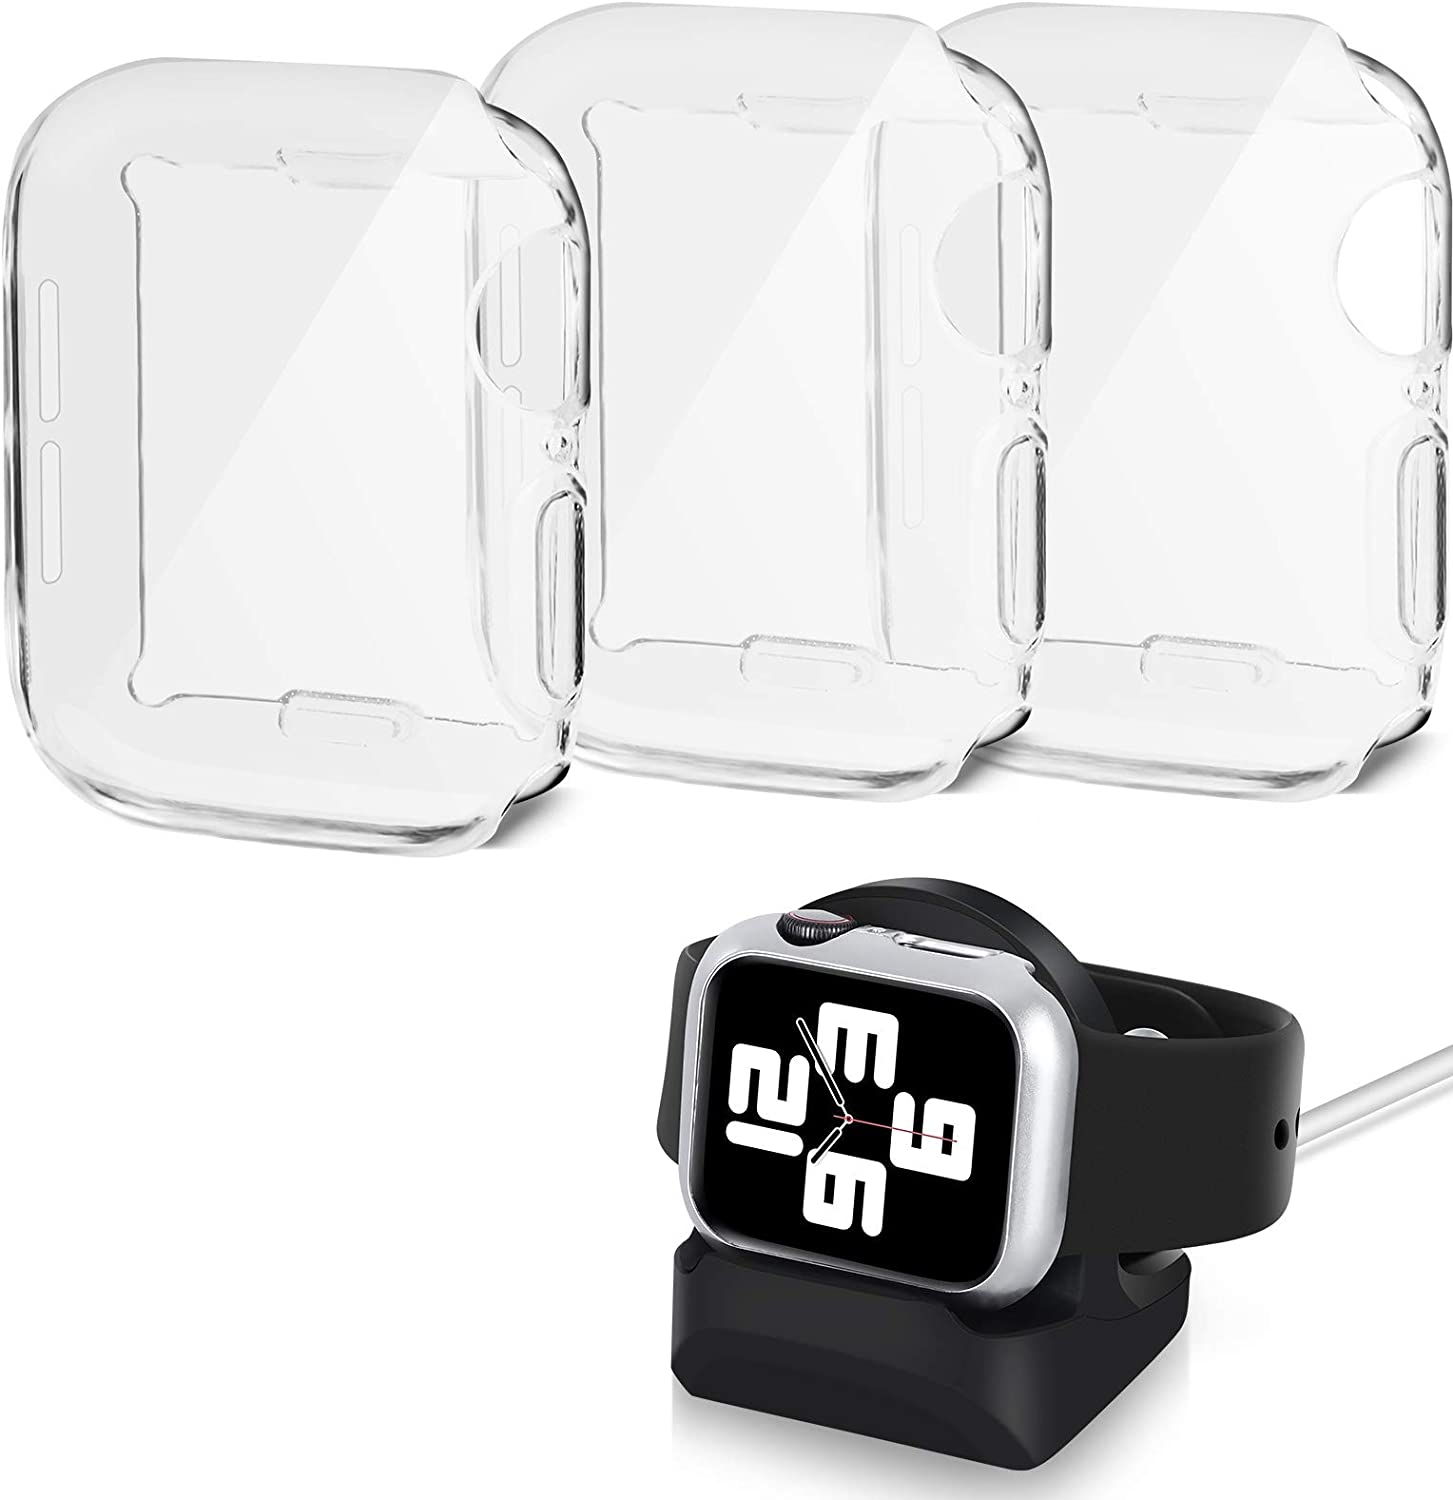 HOATWOU 3Pack Screen Protector Case for Apple Watch,HD Ultra-Thin Fit Shockproof Case for iwatch Series 4/5/6/SE,with Watch Charging Stand